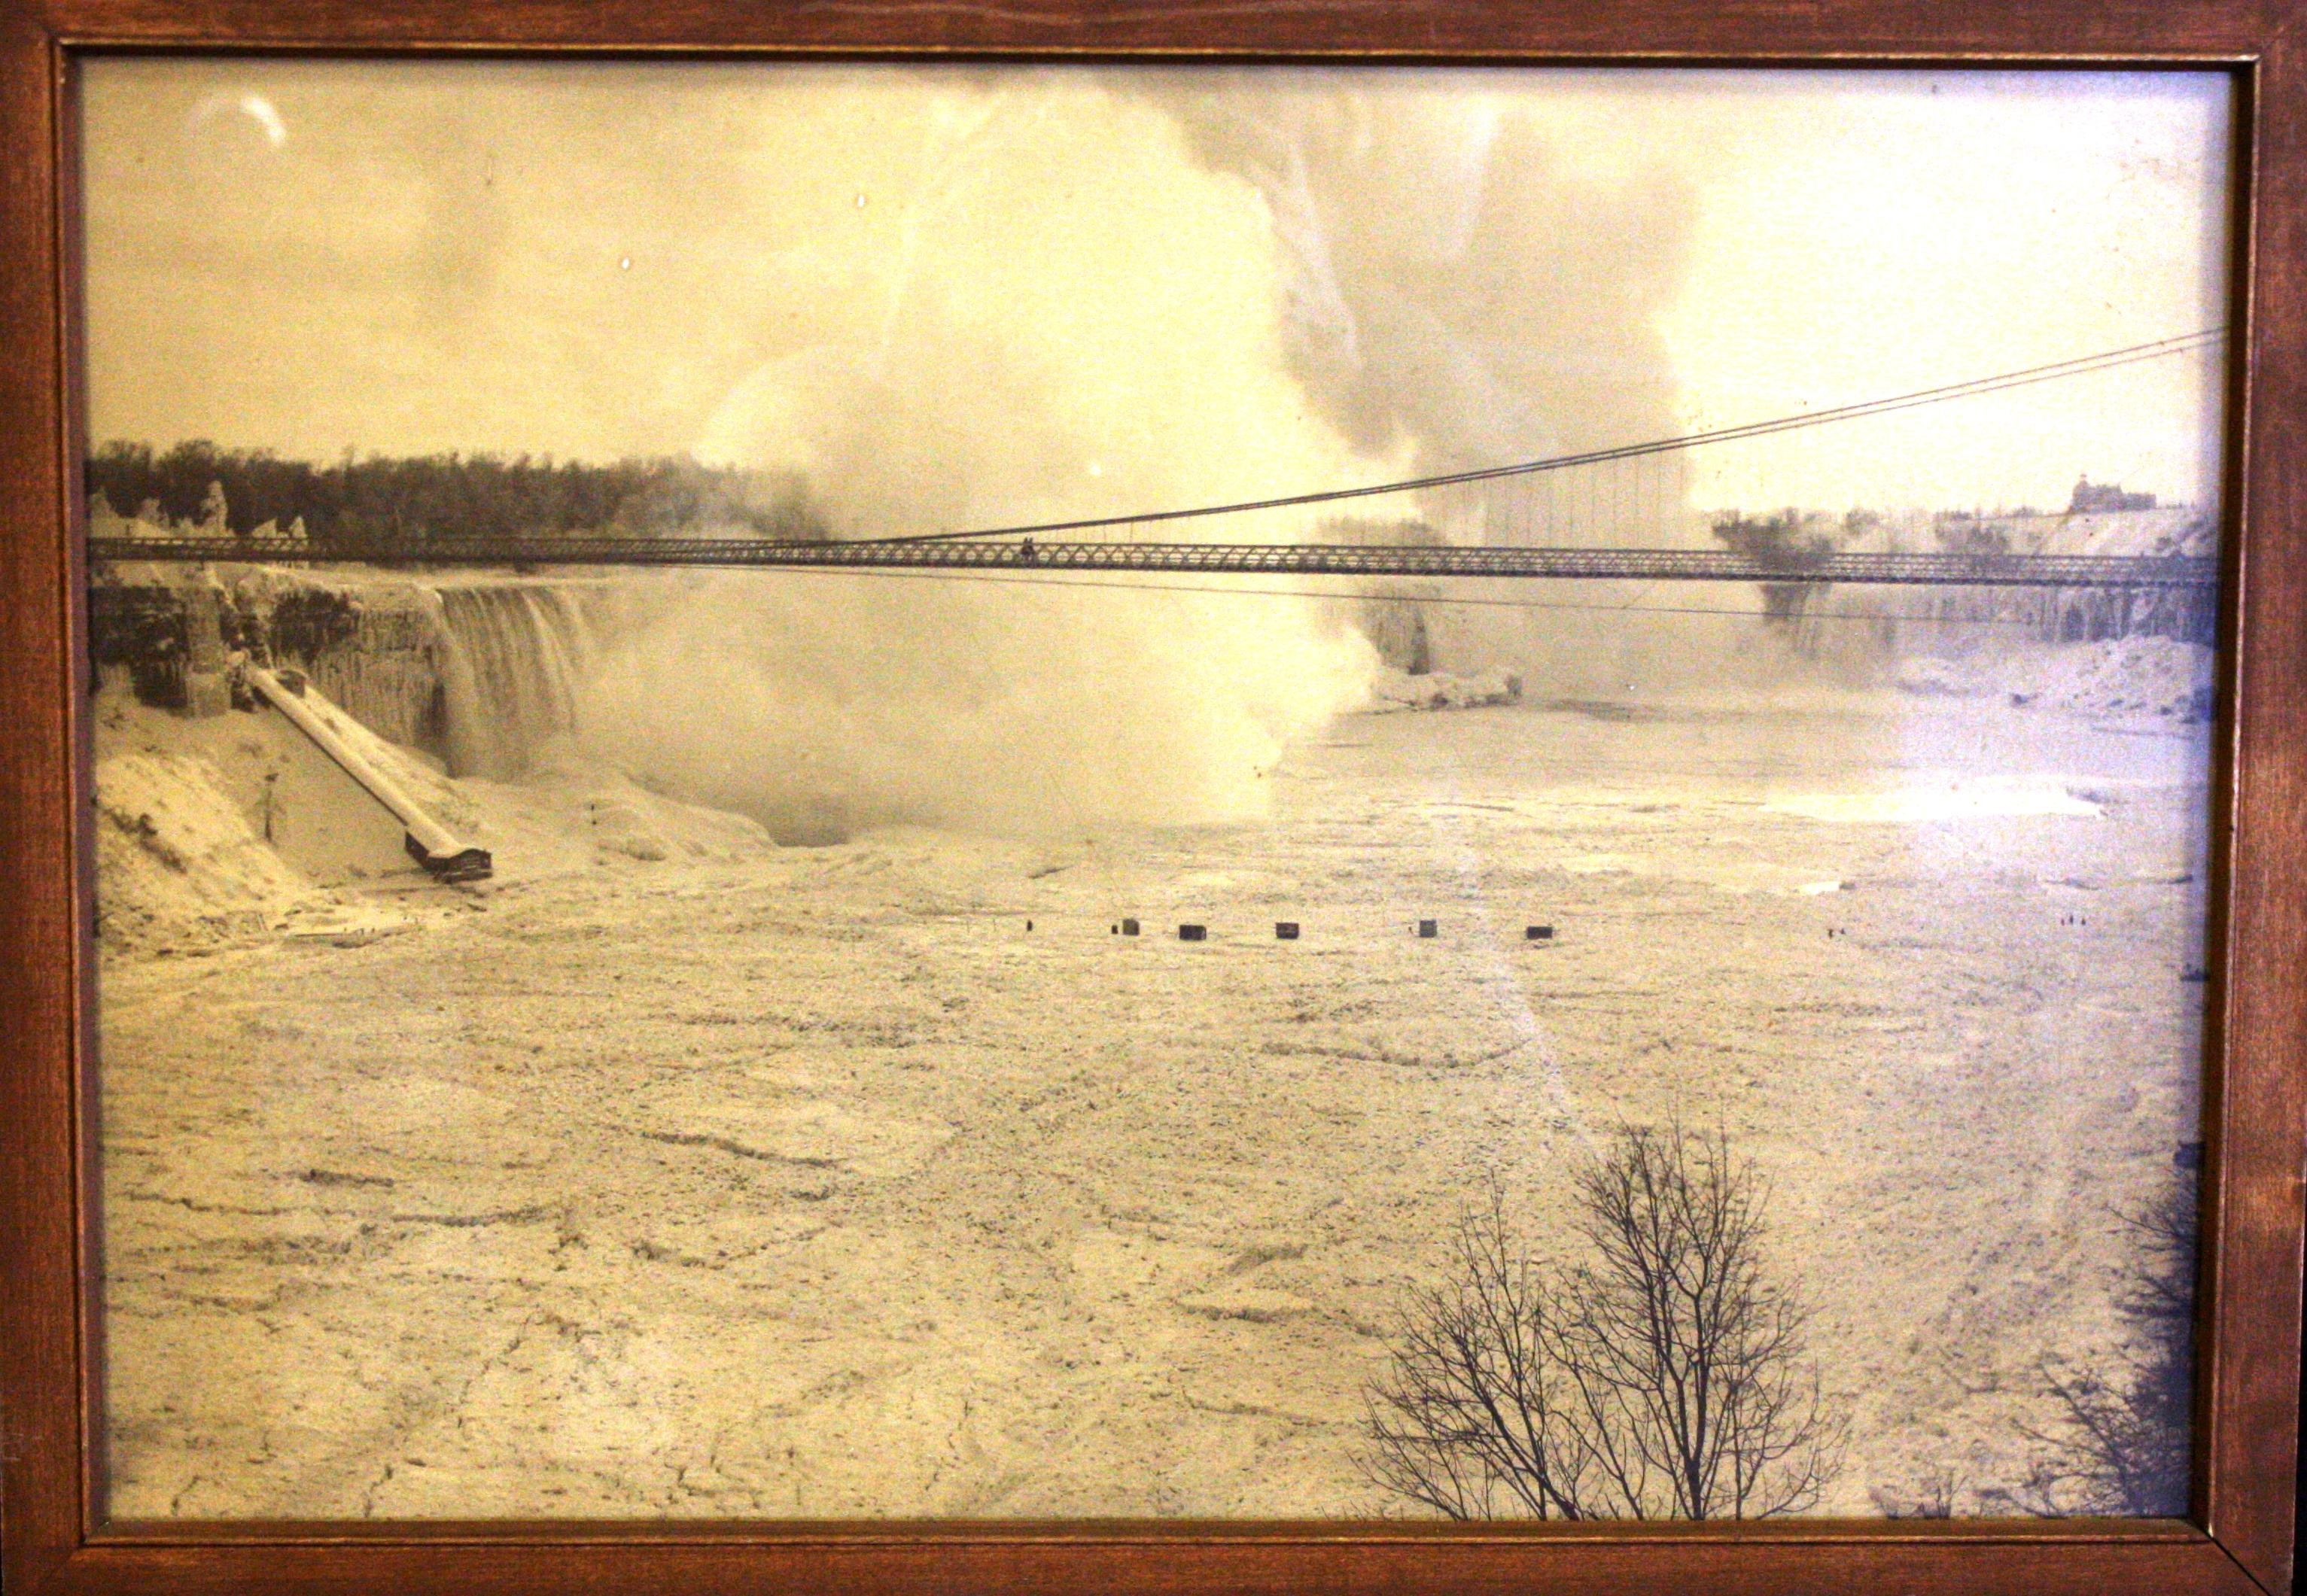 Sepia toned image of the Falls in Winter. There are structures on the ice bridge, a sheet of ice which would form during the winter, these would often be photographers. This image is take from the 1890s. The Suspension Bridge is in the foreground. The mist from the Falls is  still rising up in to the sky so the Falls were not completely stoppe as they were in 1848.